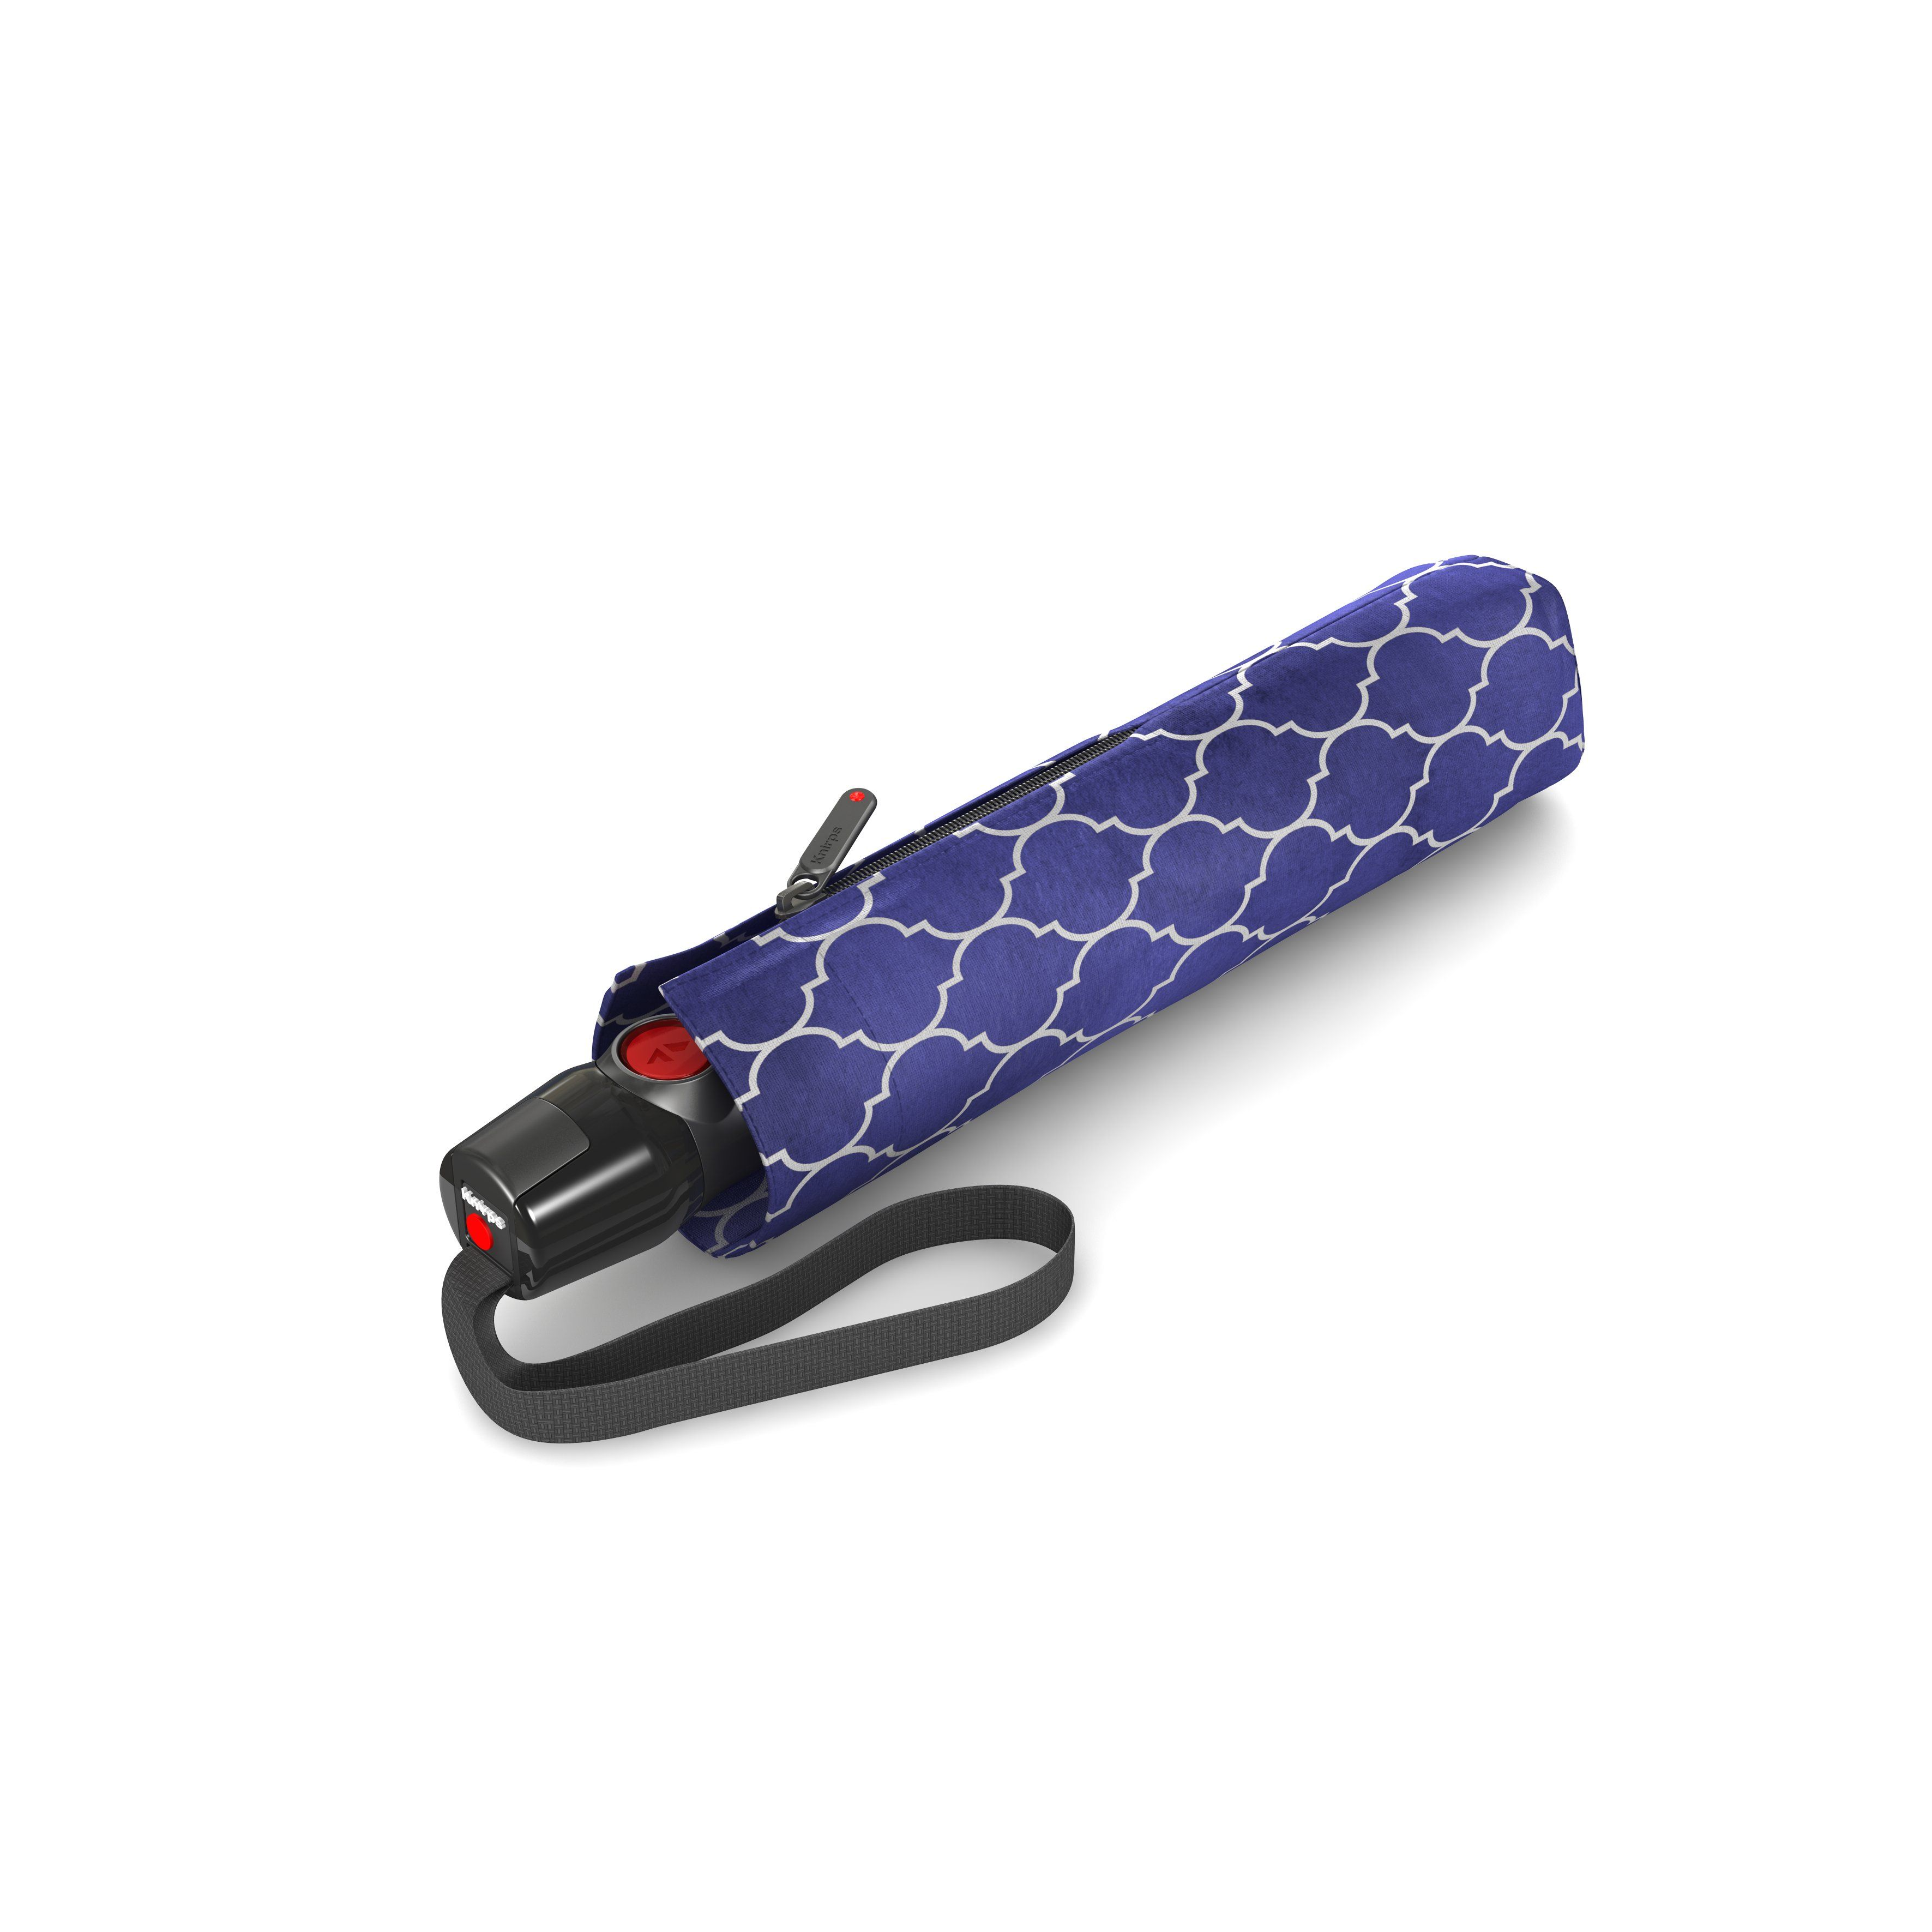 Knirps Umbrella Knirps T.200 medium duomatic regenerate blue with UV Protection - photo 2